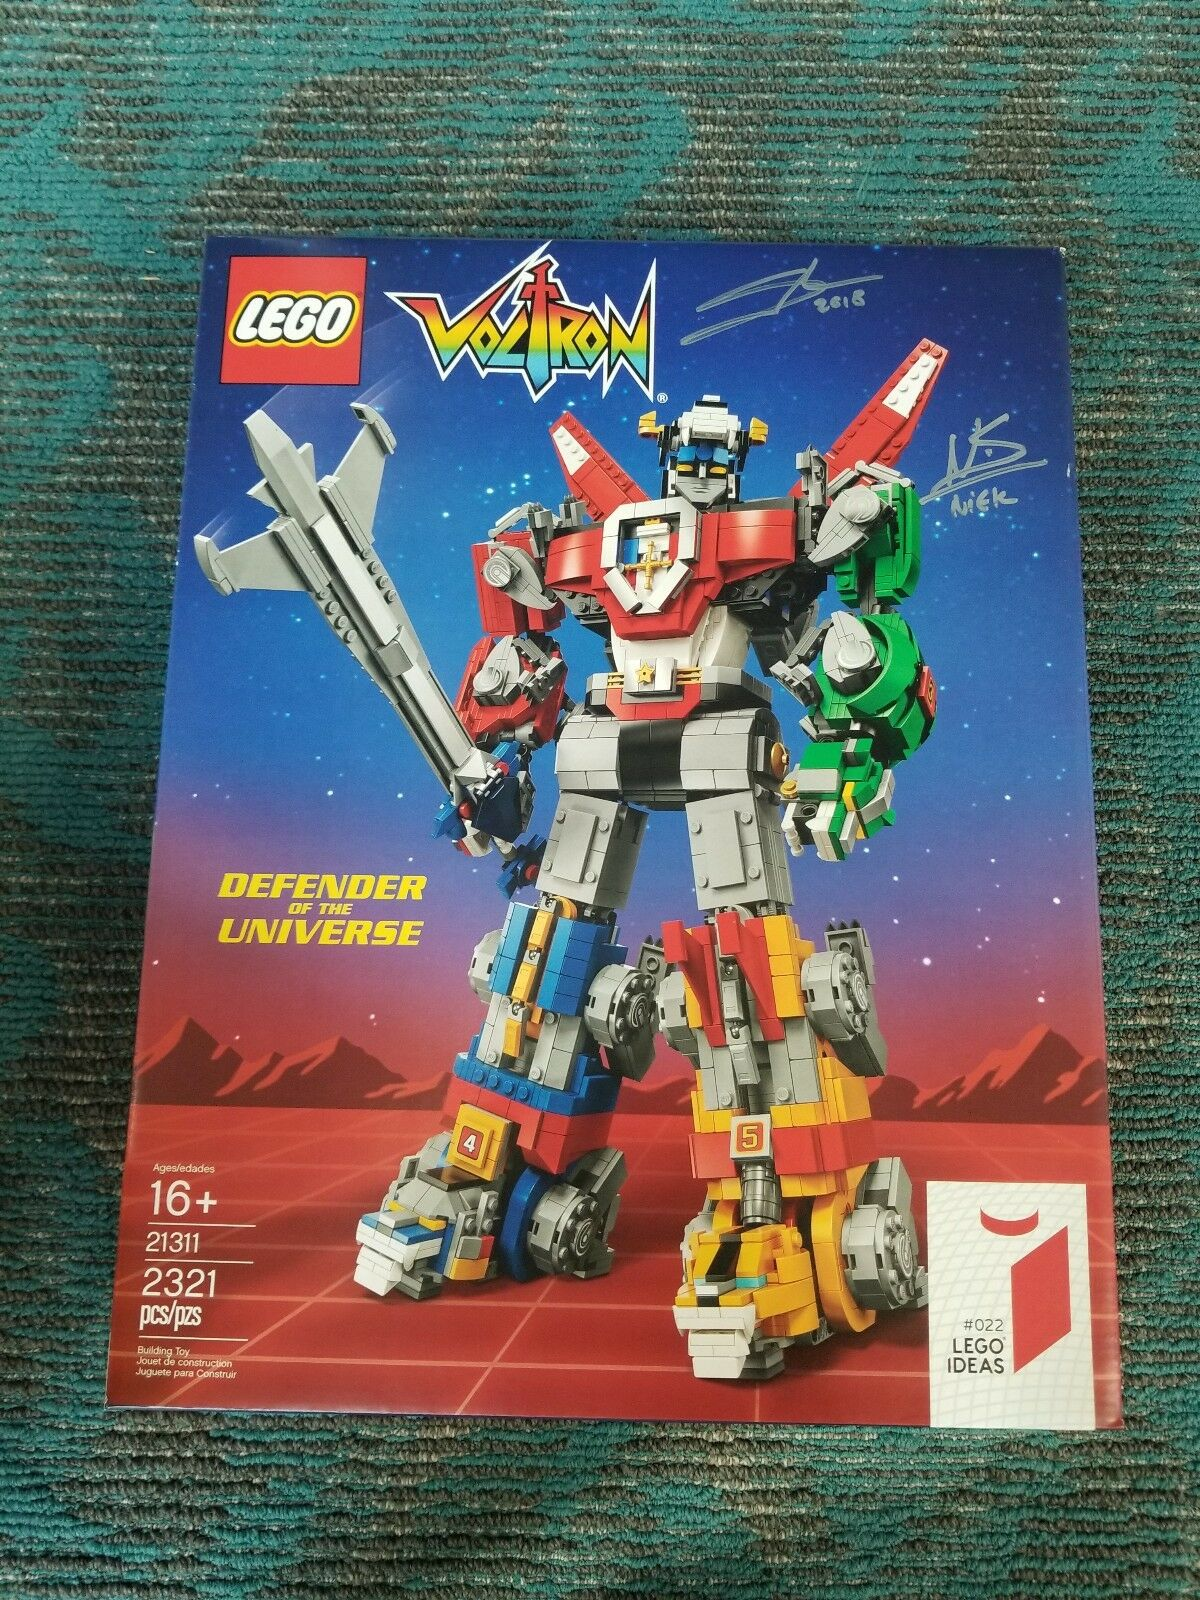 Lego Voltron 21311 SDCC exclusive Signed By Designer, SOLD OUT @ SDCC